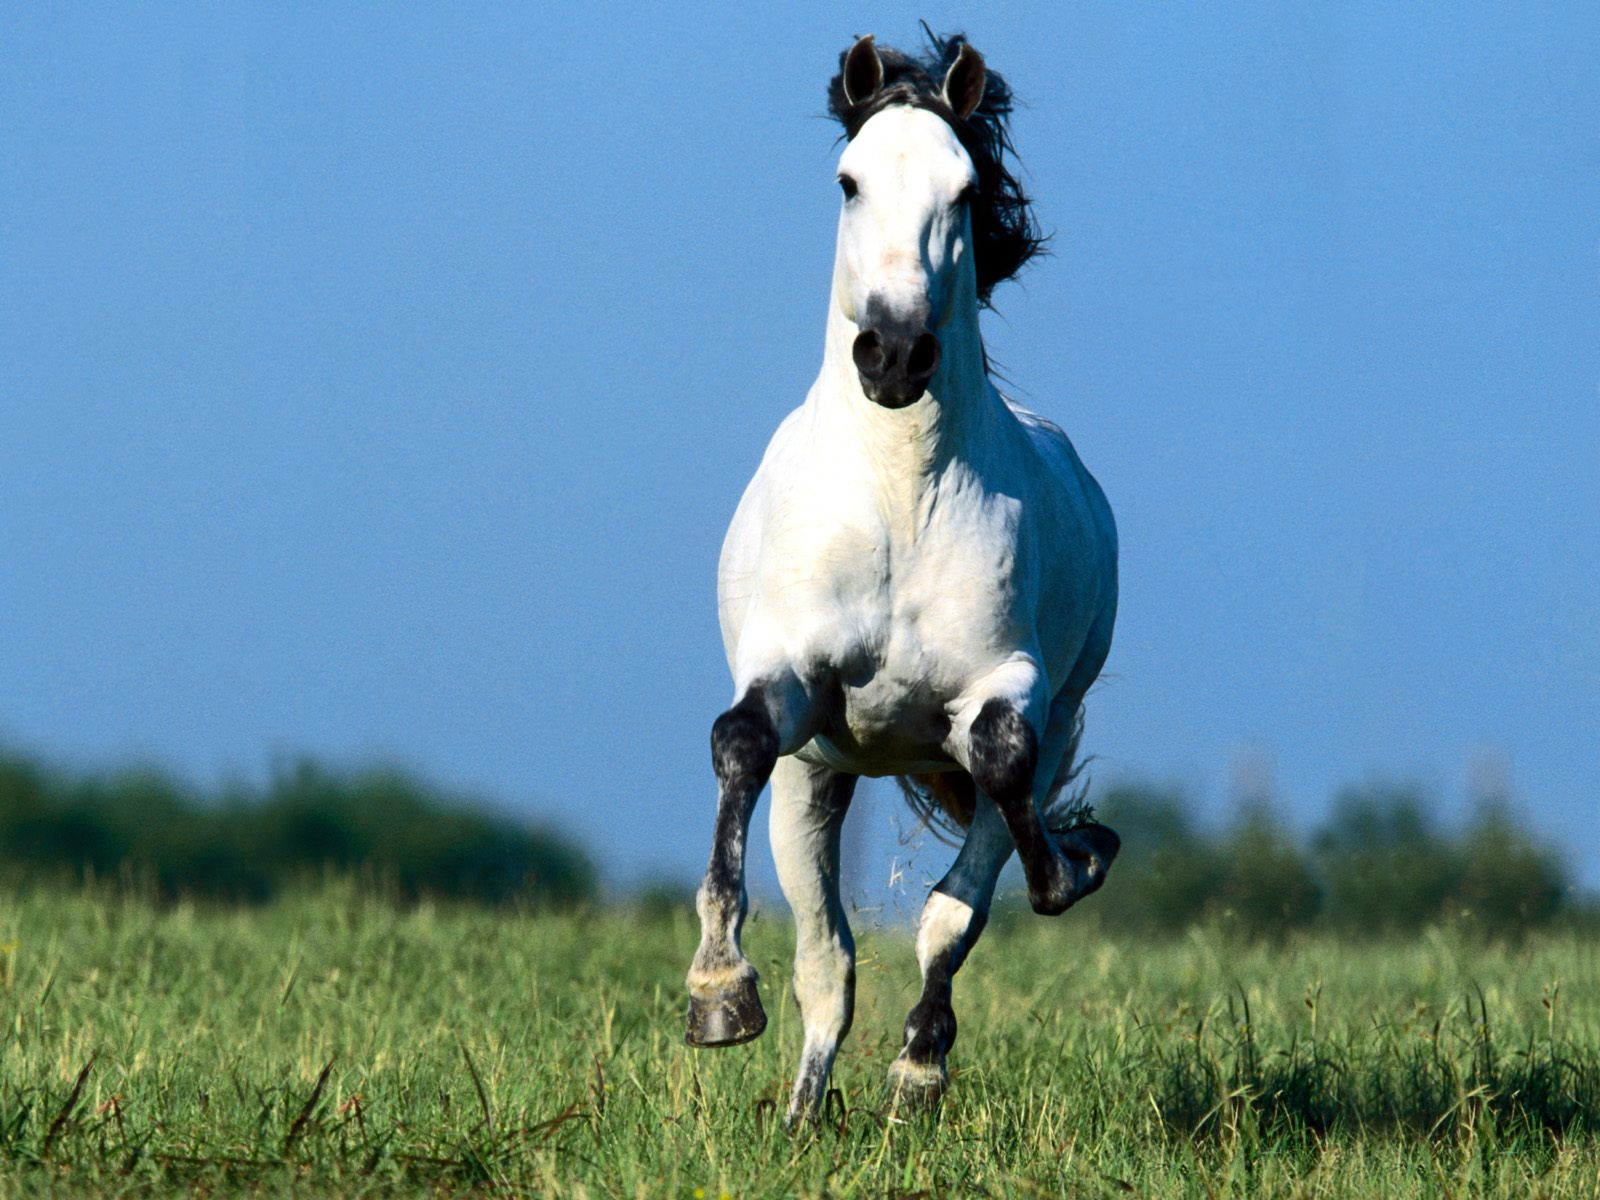 White running horses - photo#4